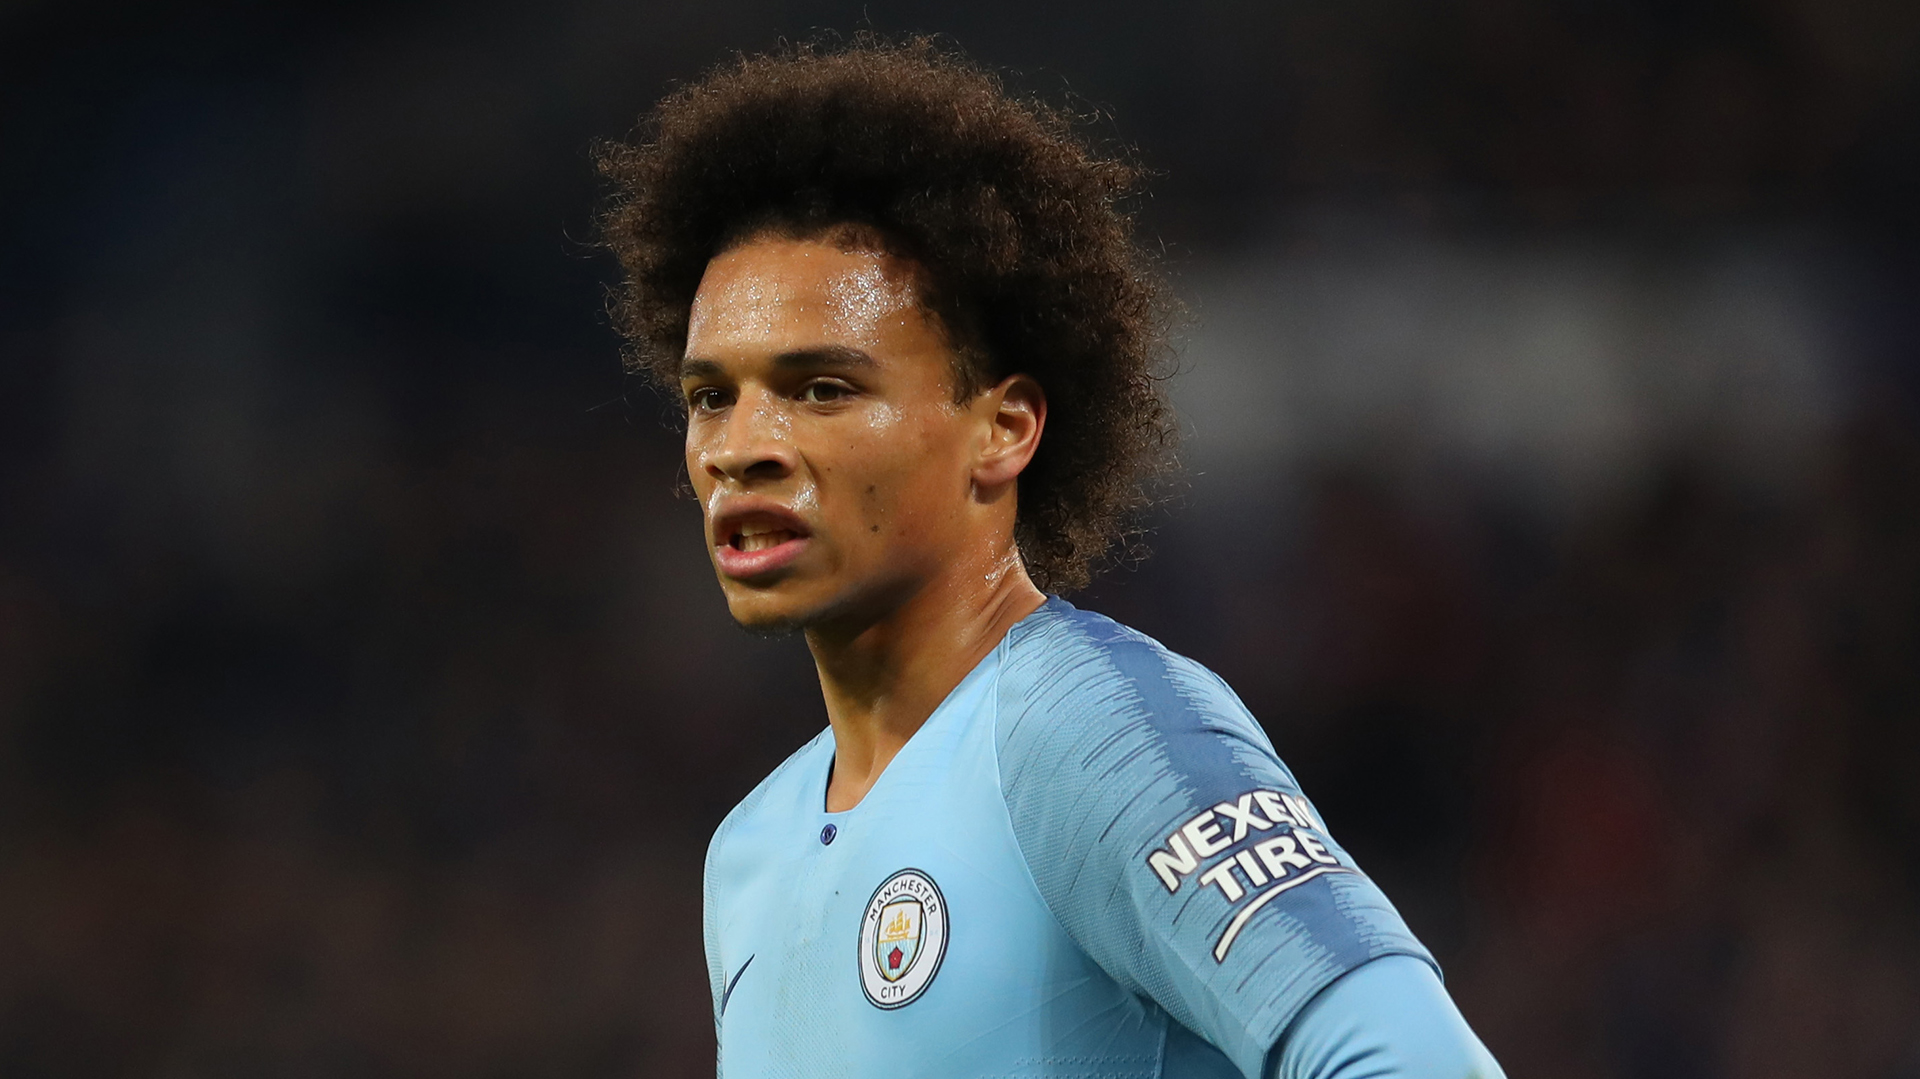 Has Pep Guardiola lost faith in Leroy Sane?